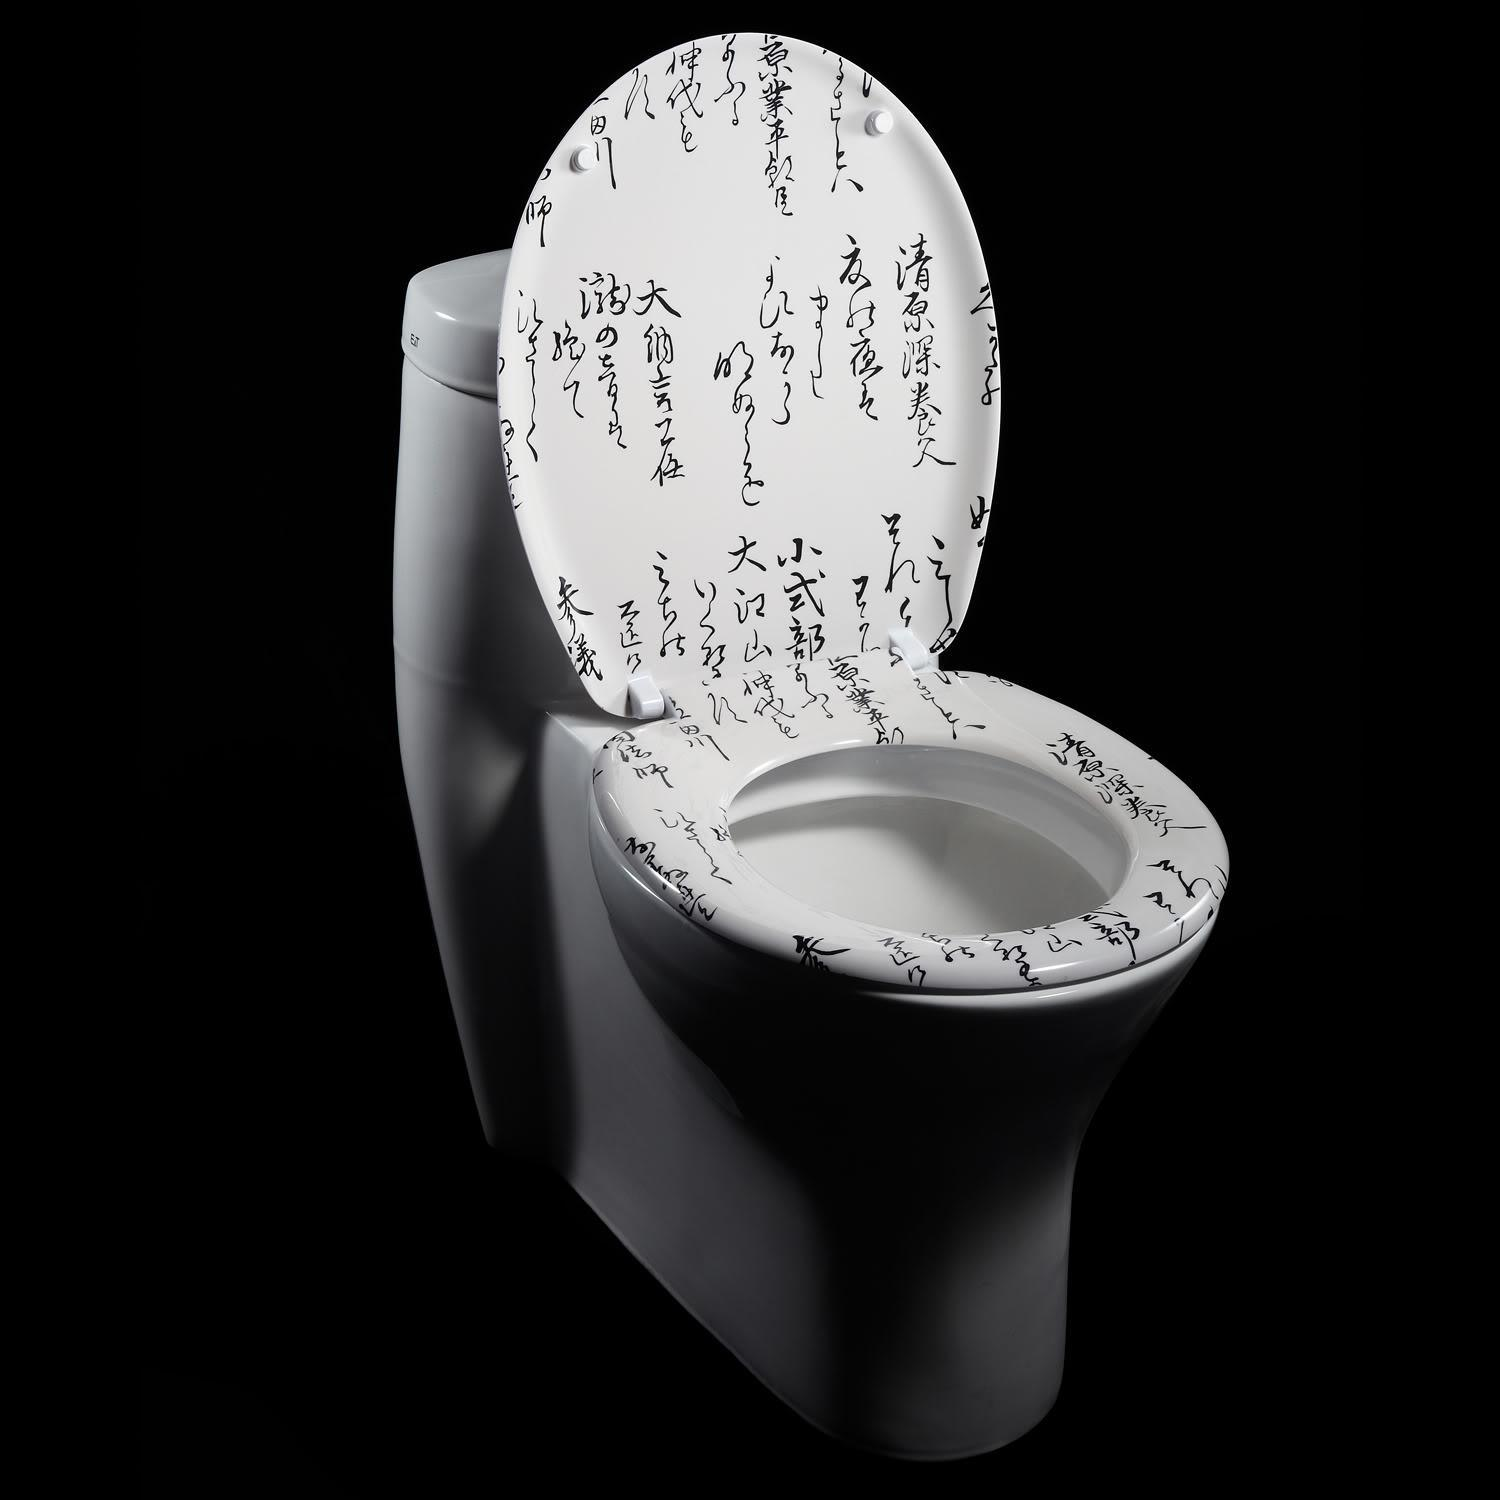 Japanese Characters Designer Melamine Toilet Seat Cover Free Shipping On Or